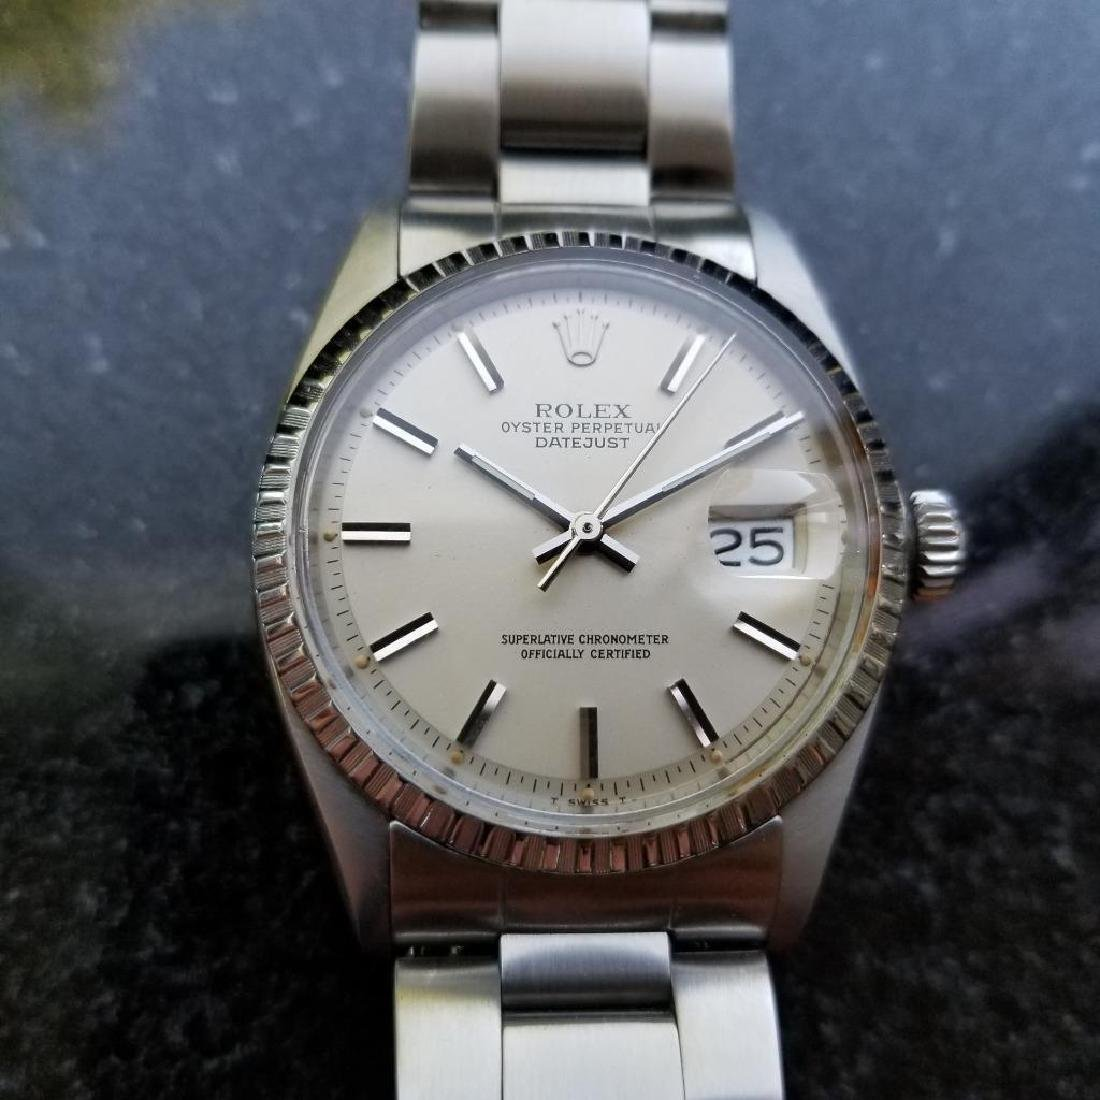 Rolex Oyster Perpetual 1603 Datejust Vintage 1977 Auto - 2